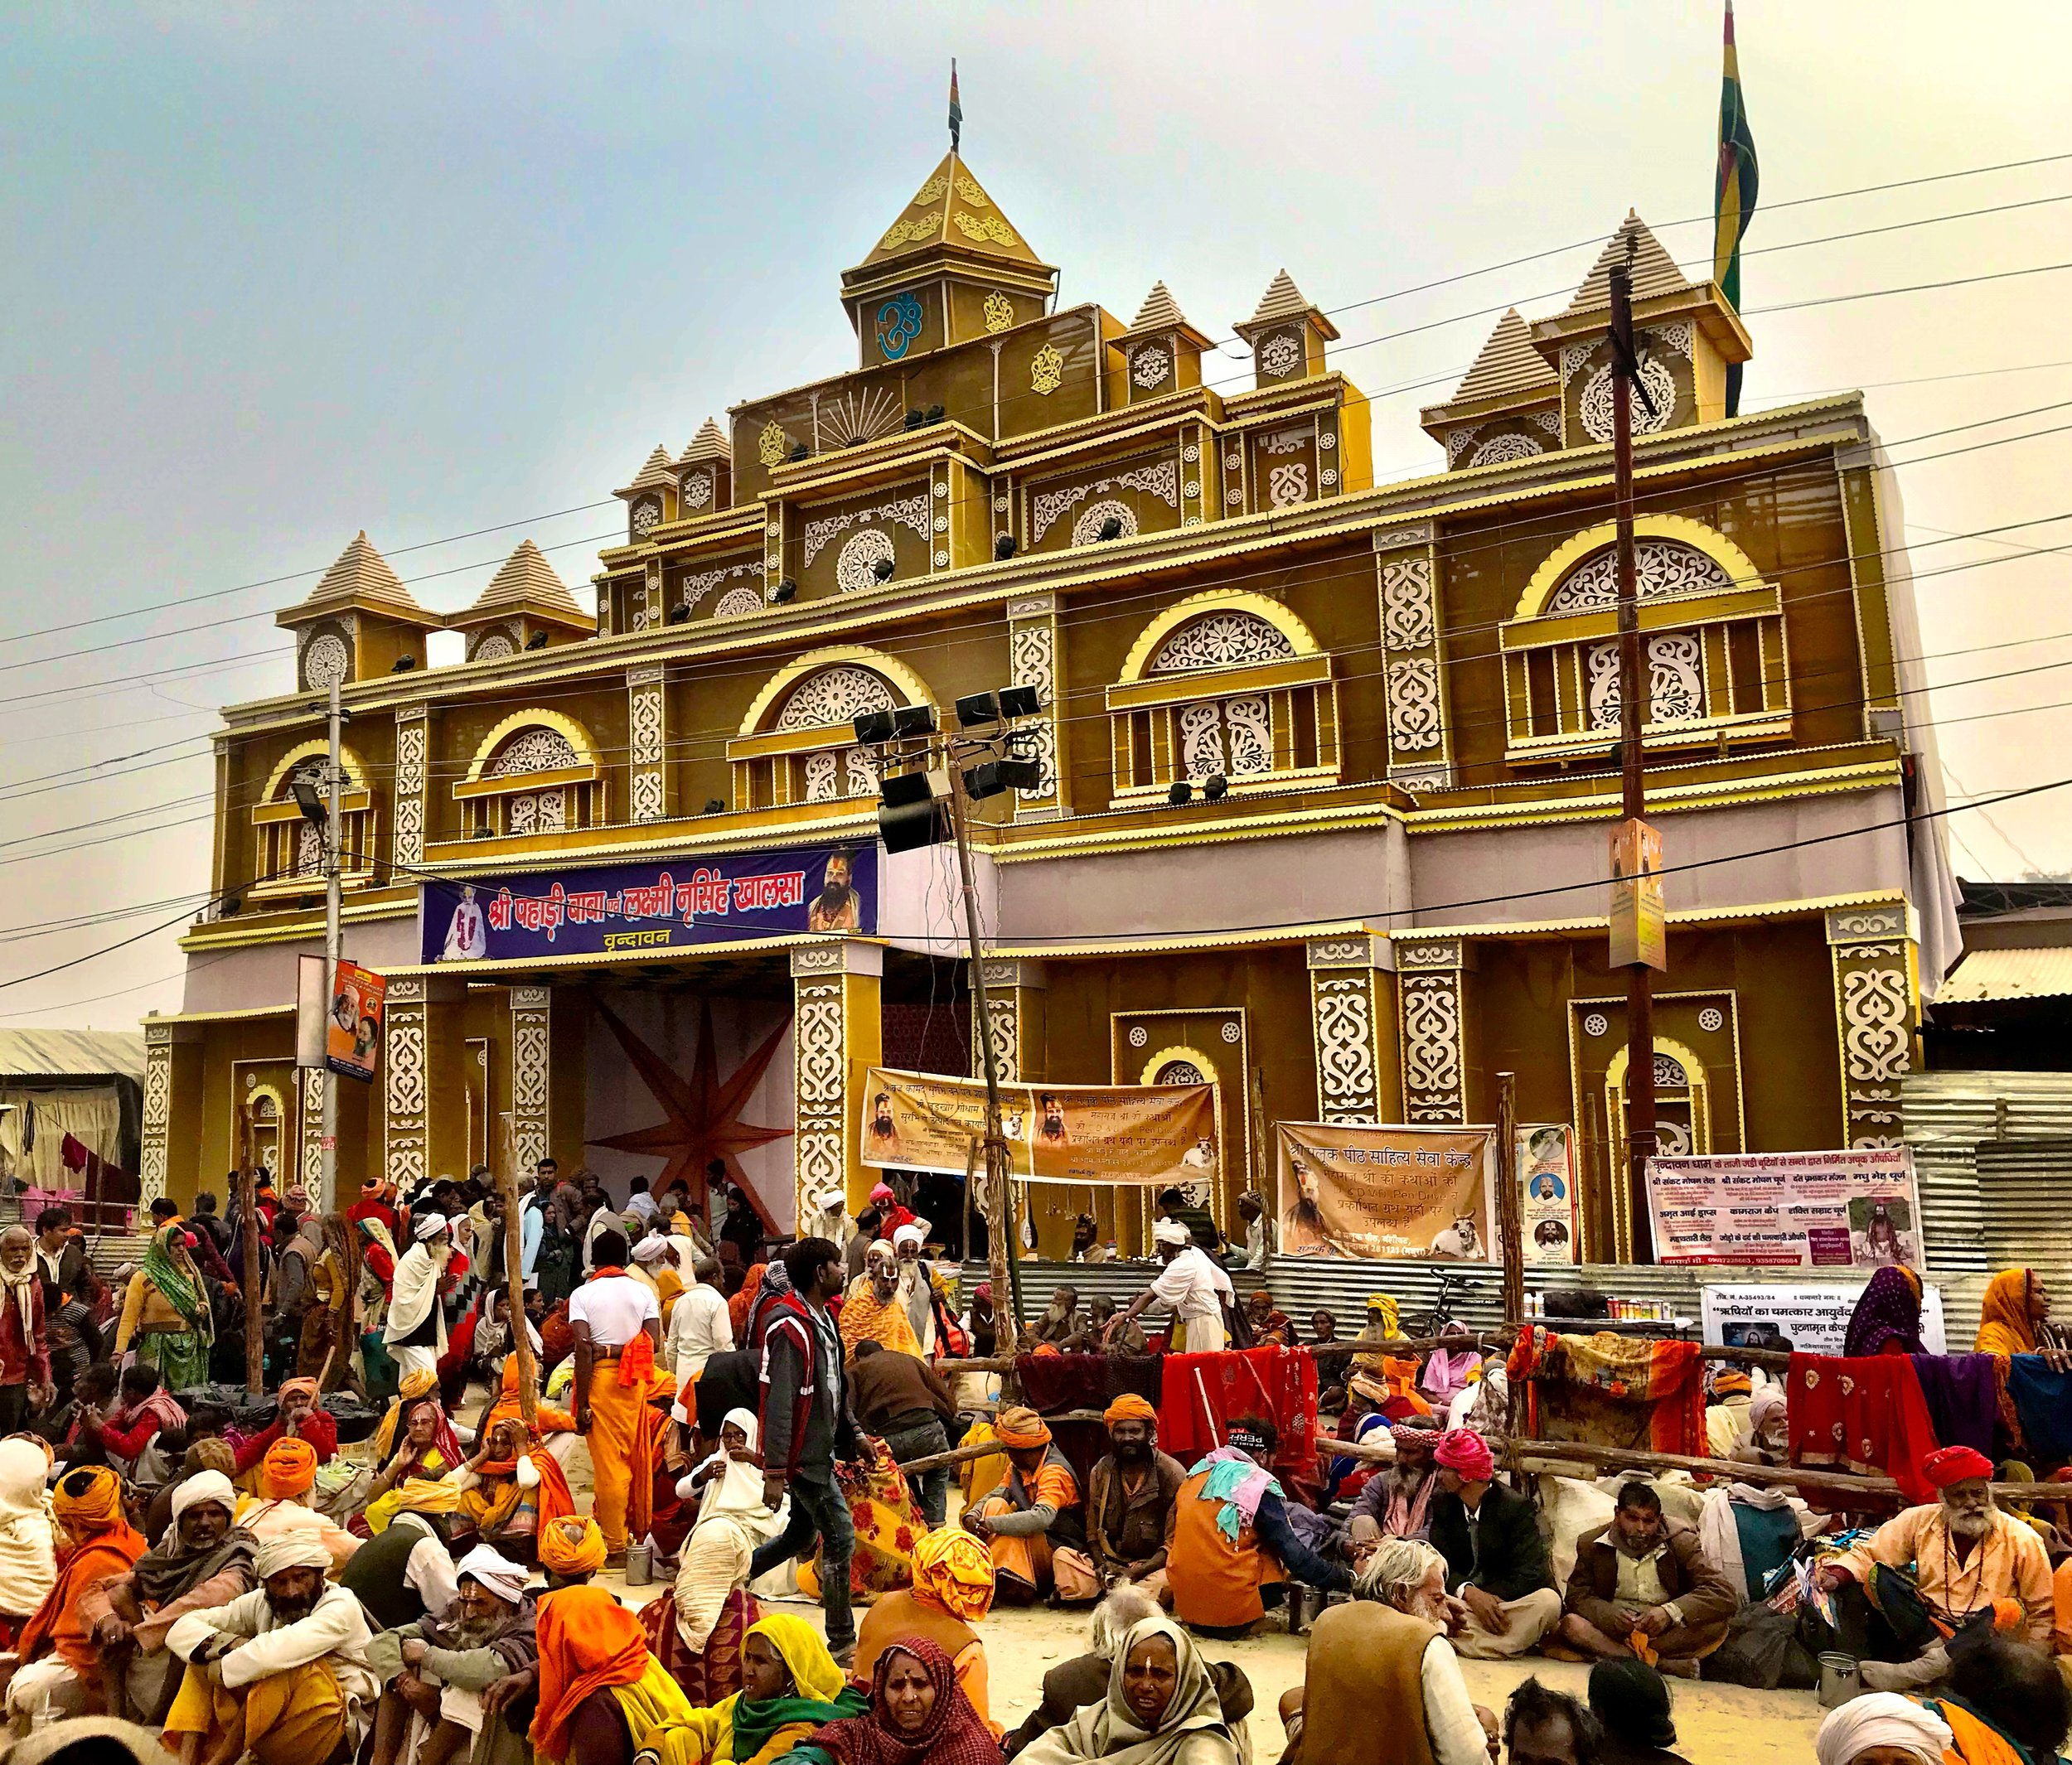 Inside the Kumbha Mela Festival